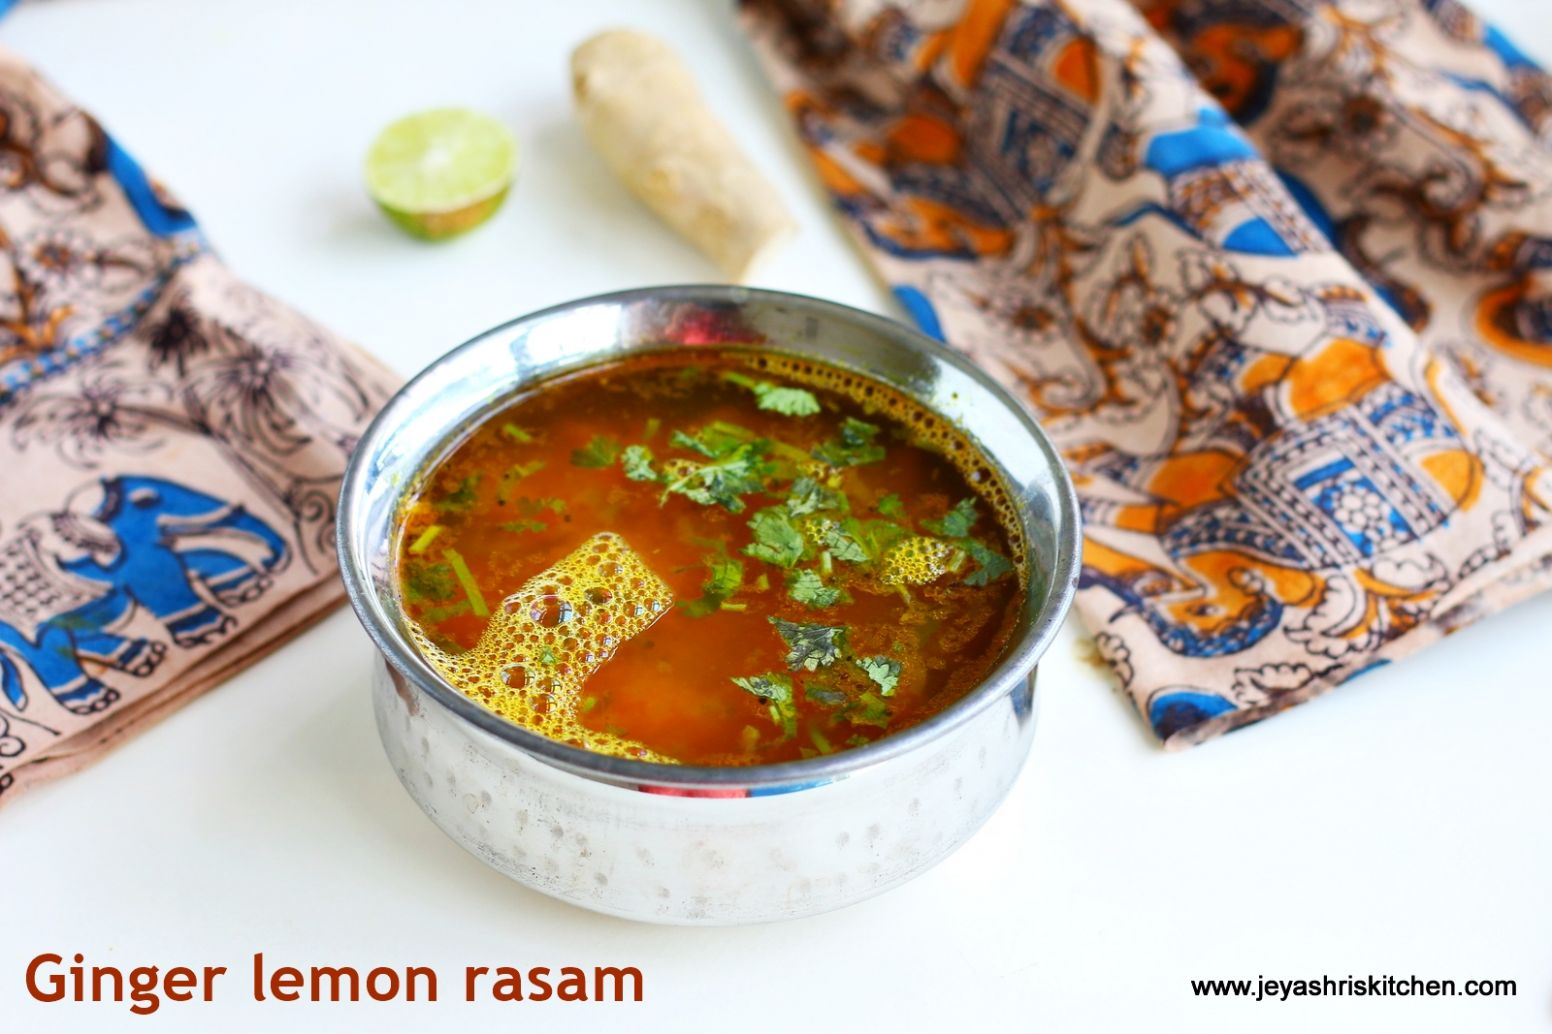 Ginger Lemon Rasam | South Indian Rasam recipes by Jeyashri's Kitchen